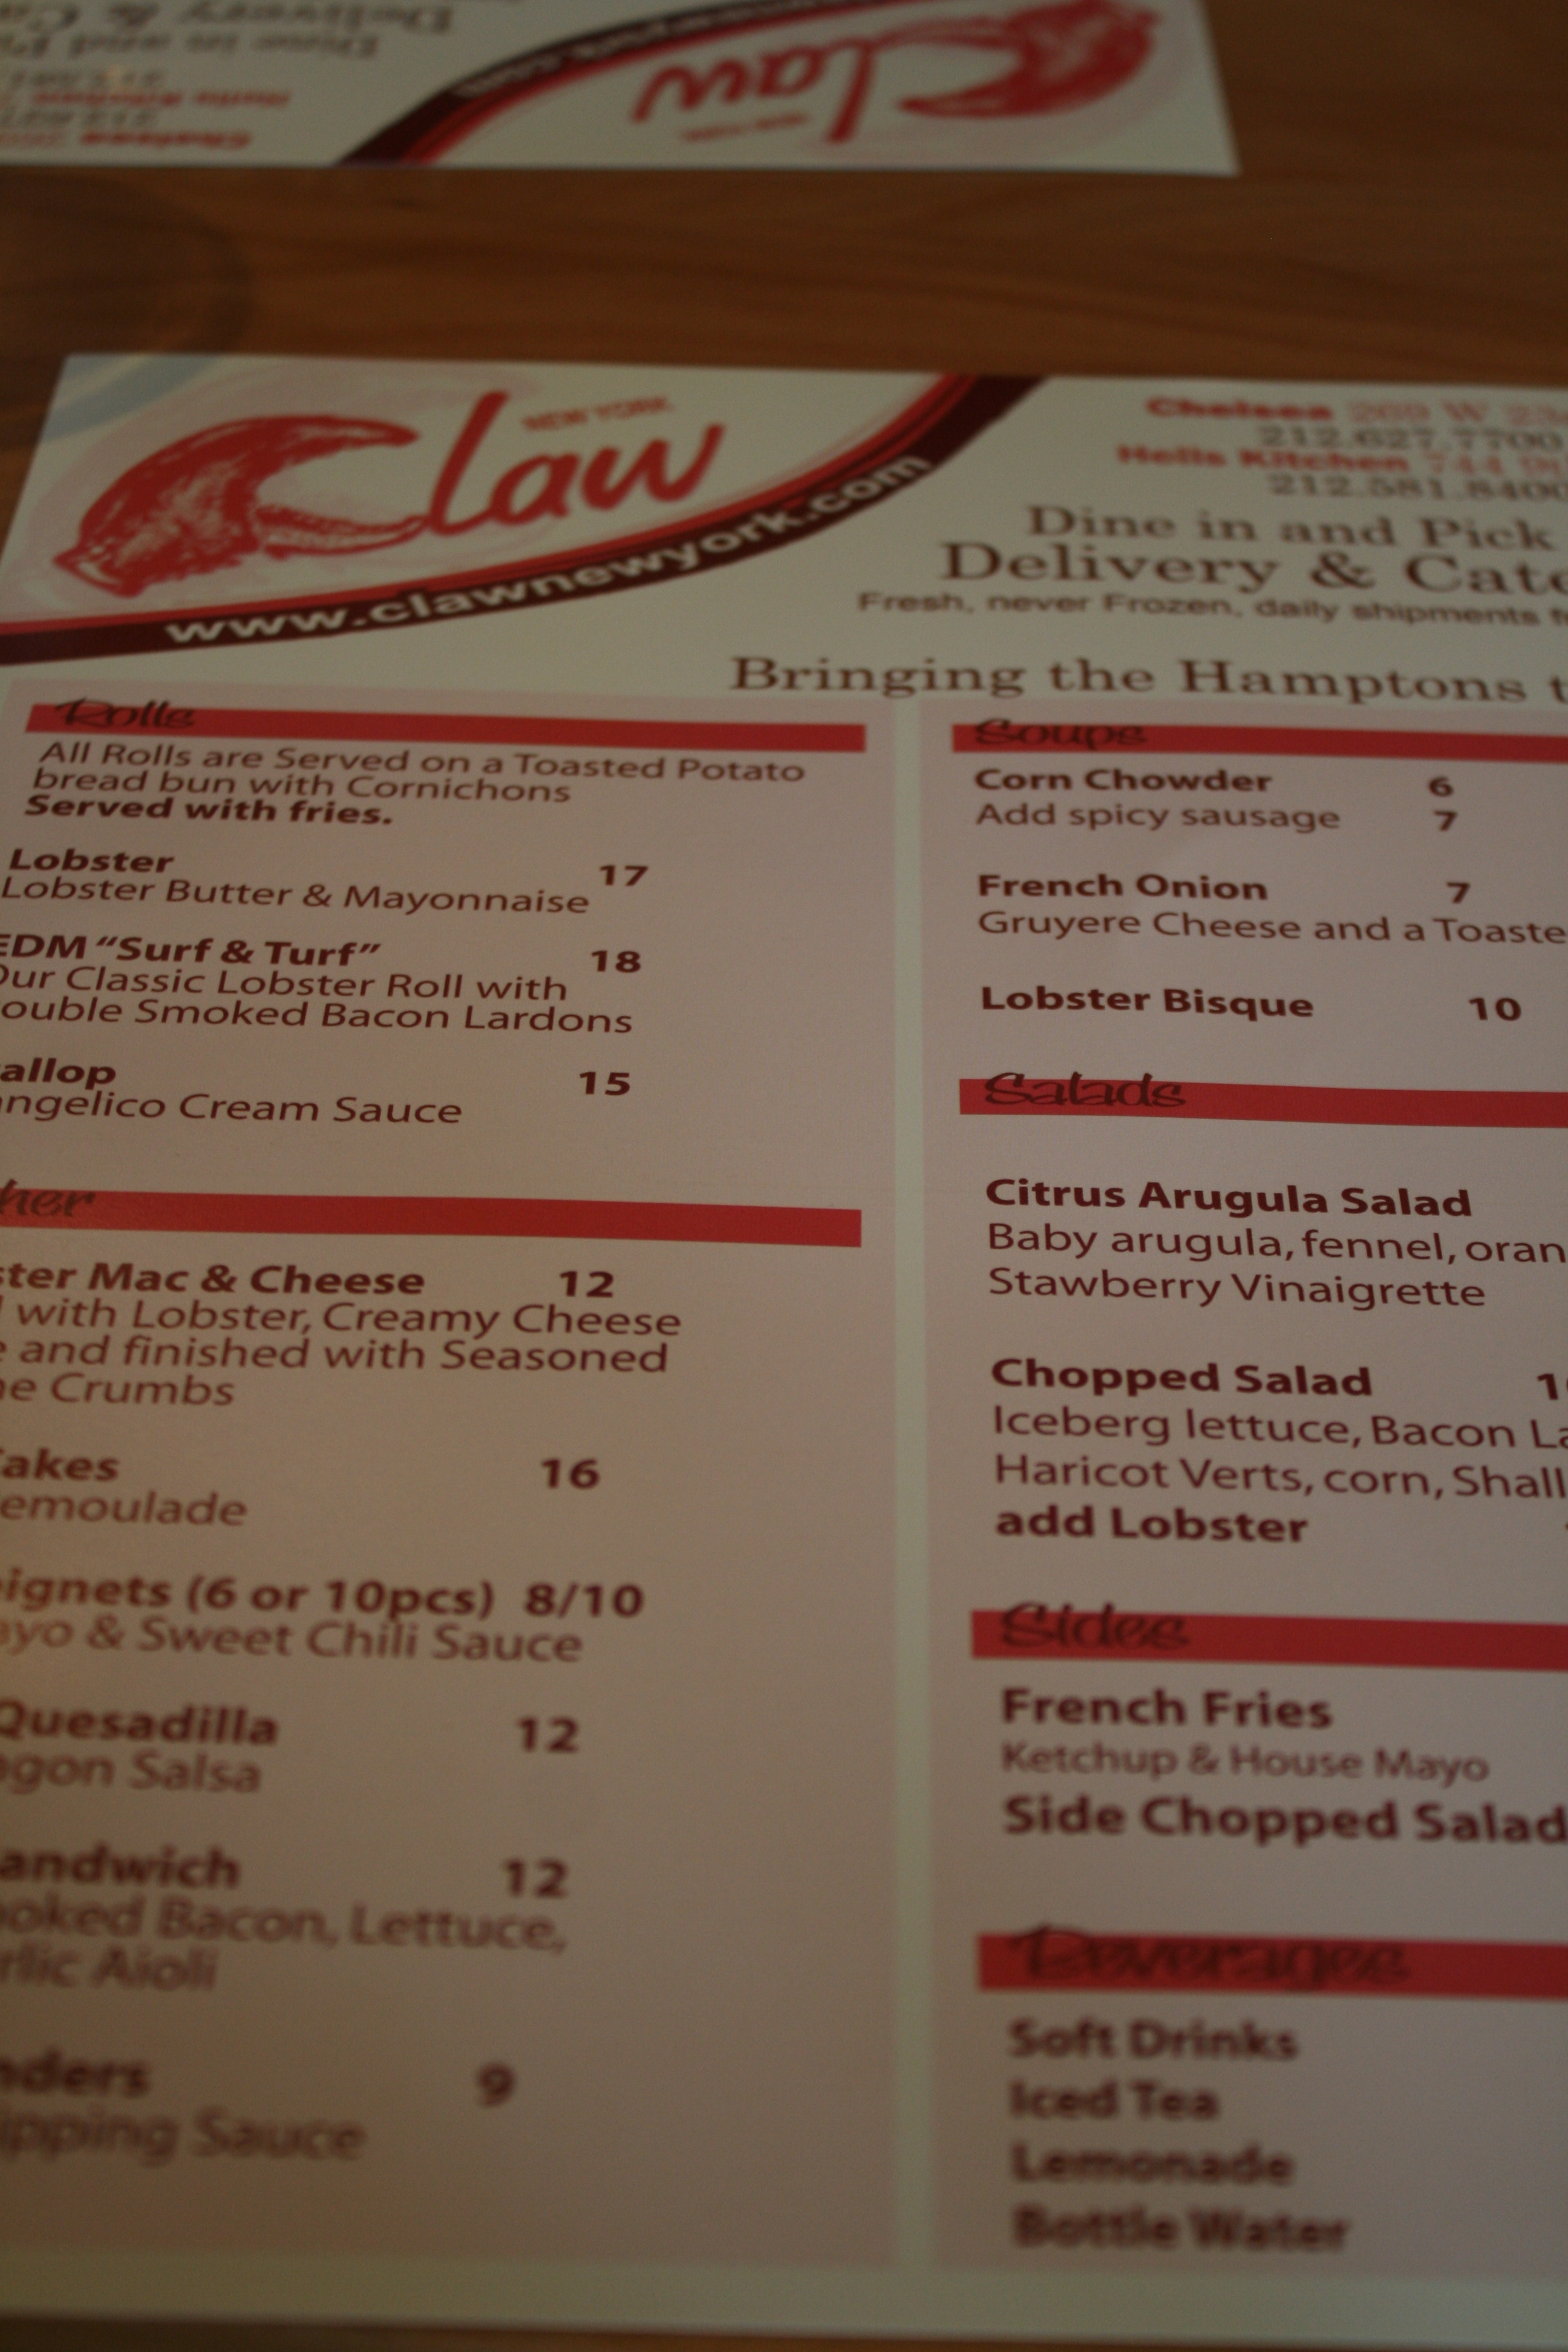 claw new england lobster rolls in hell s kitchen